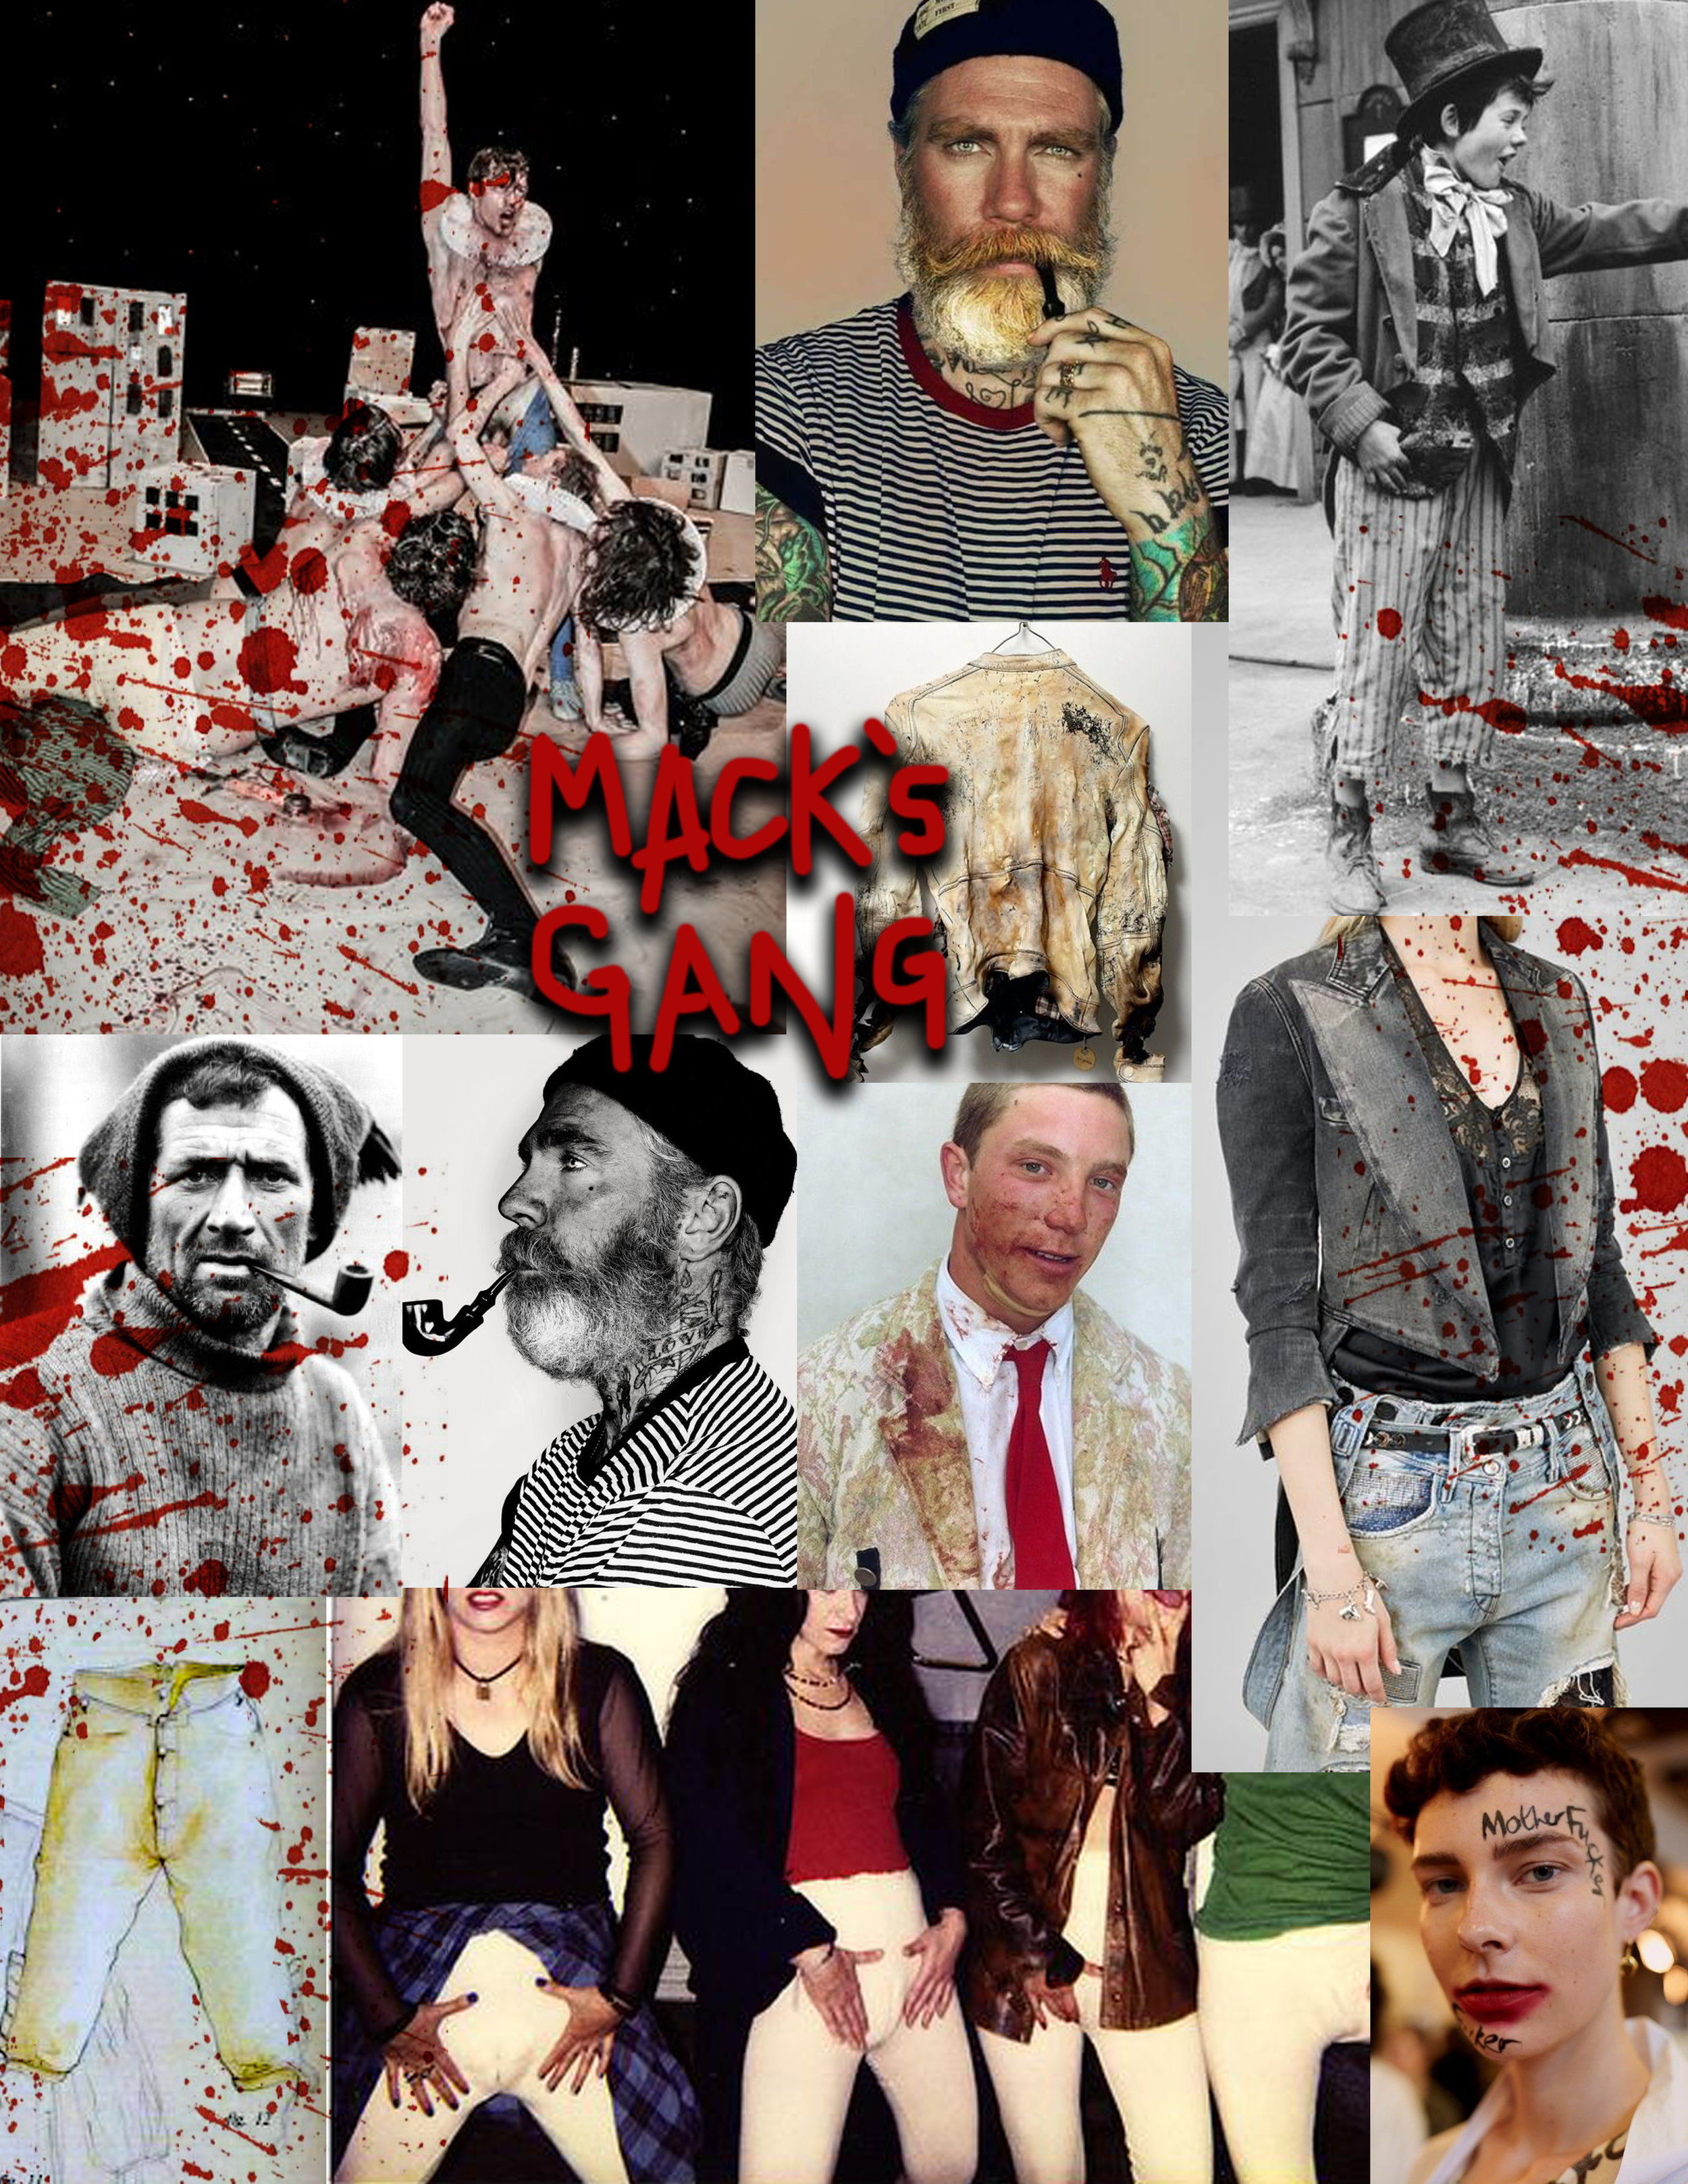 Inspiration collage for Mac's gang